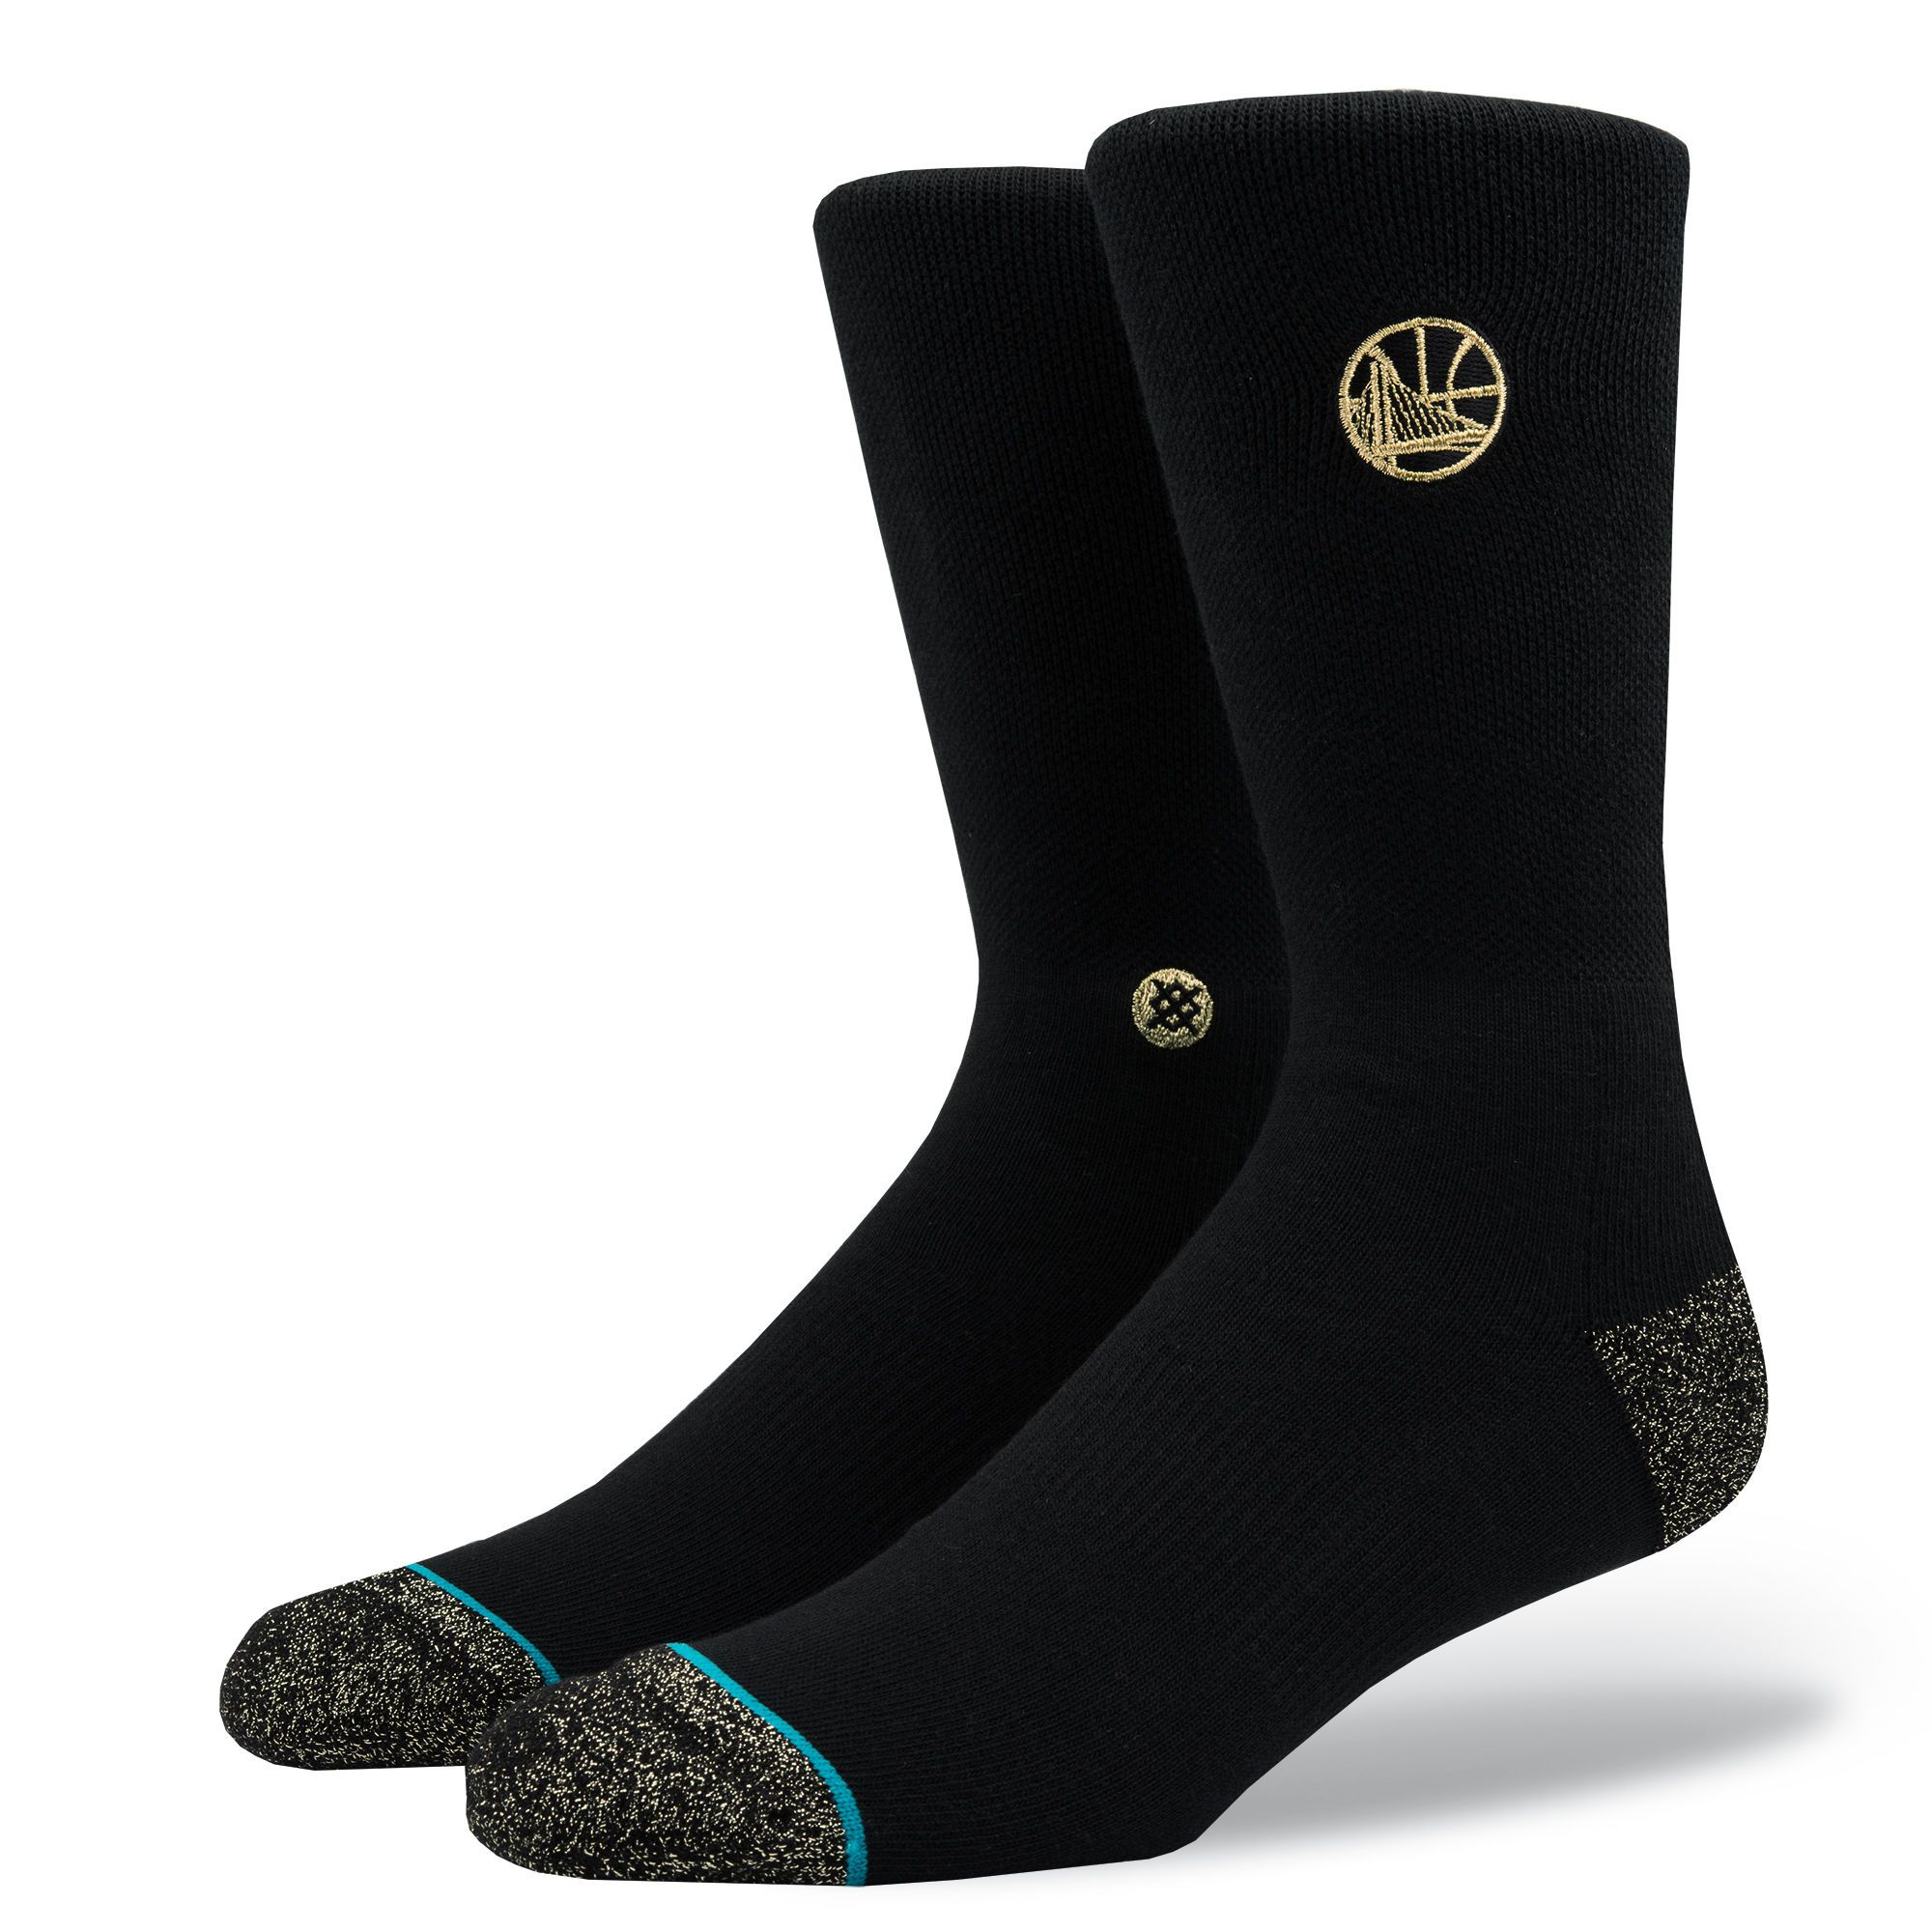 Stance Basketball Socks - Warriors Trophy